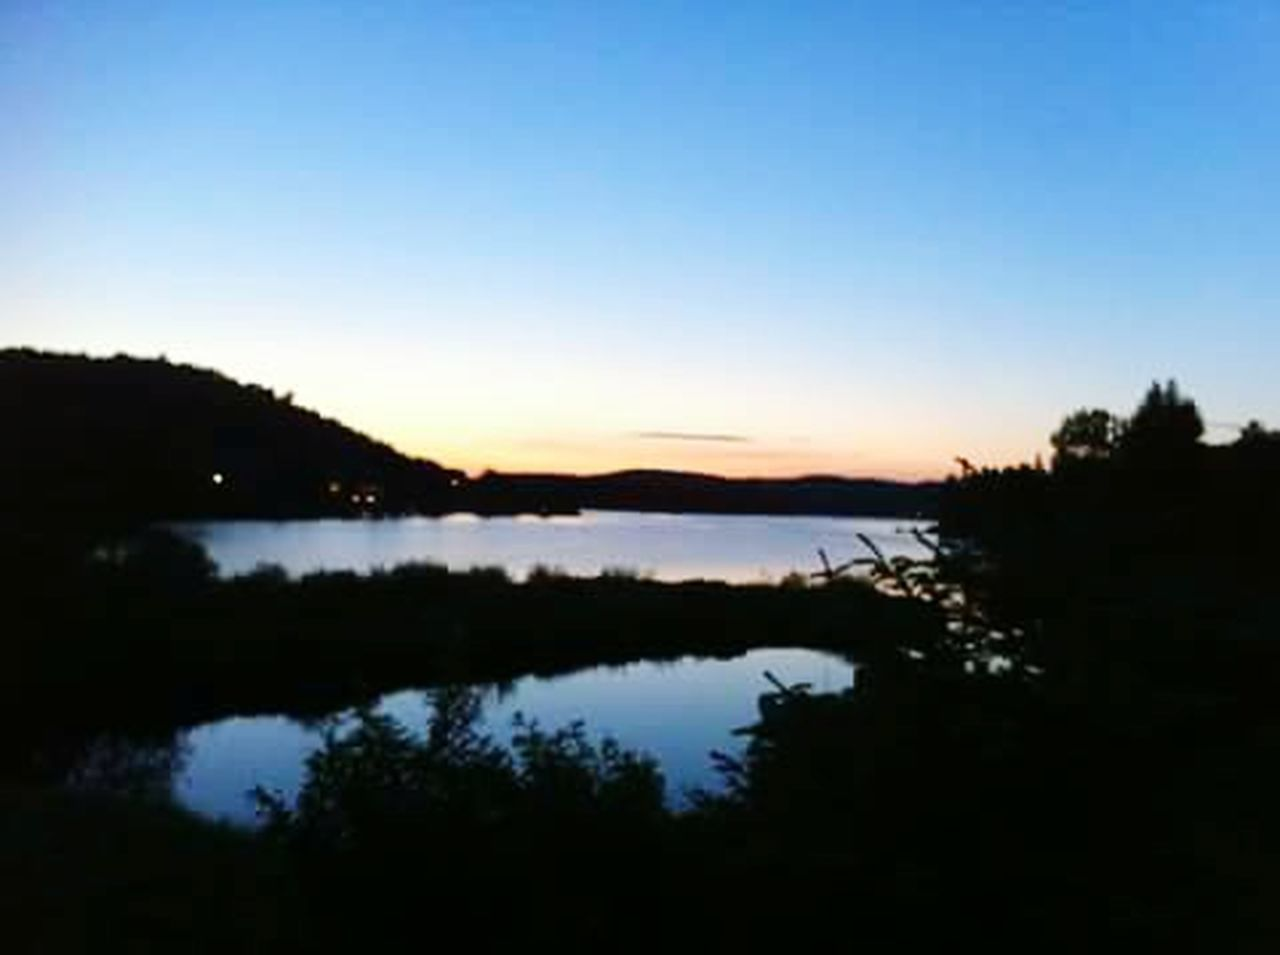 silhouette, reflection, scenics, tree, lake, nature, sunset, no people, dusk, tranquil scene, tranquility, outdoors, water, sky, beauty in nature, landscape, forest, cloud - sky, travel destinations, night, moon